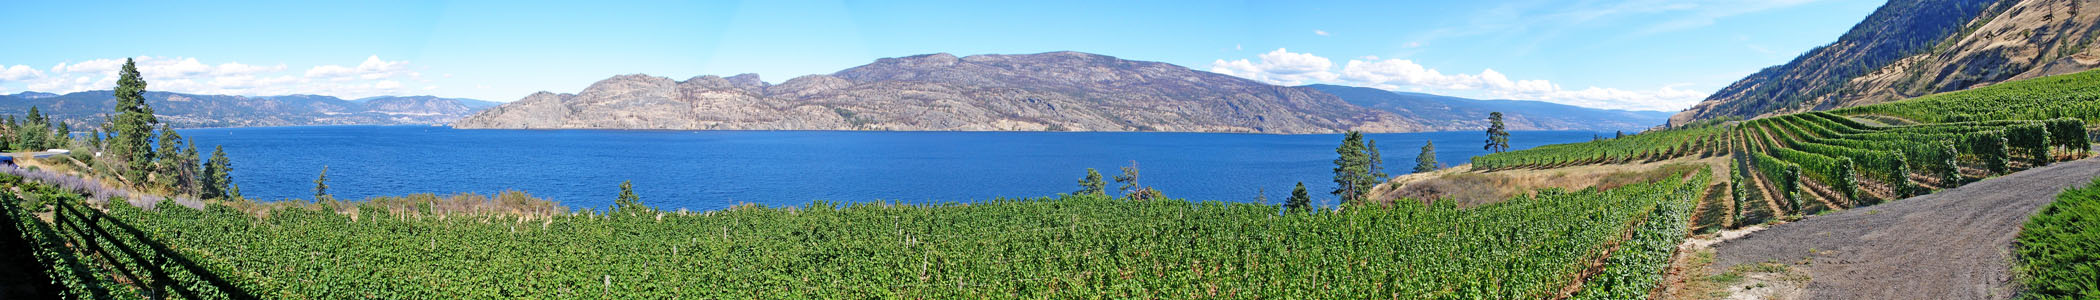 Okanagan_banner_Greata_Vineyard_view